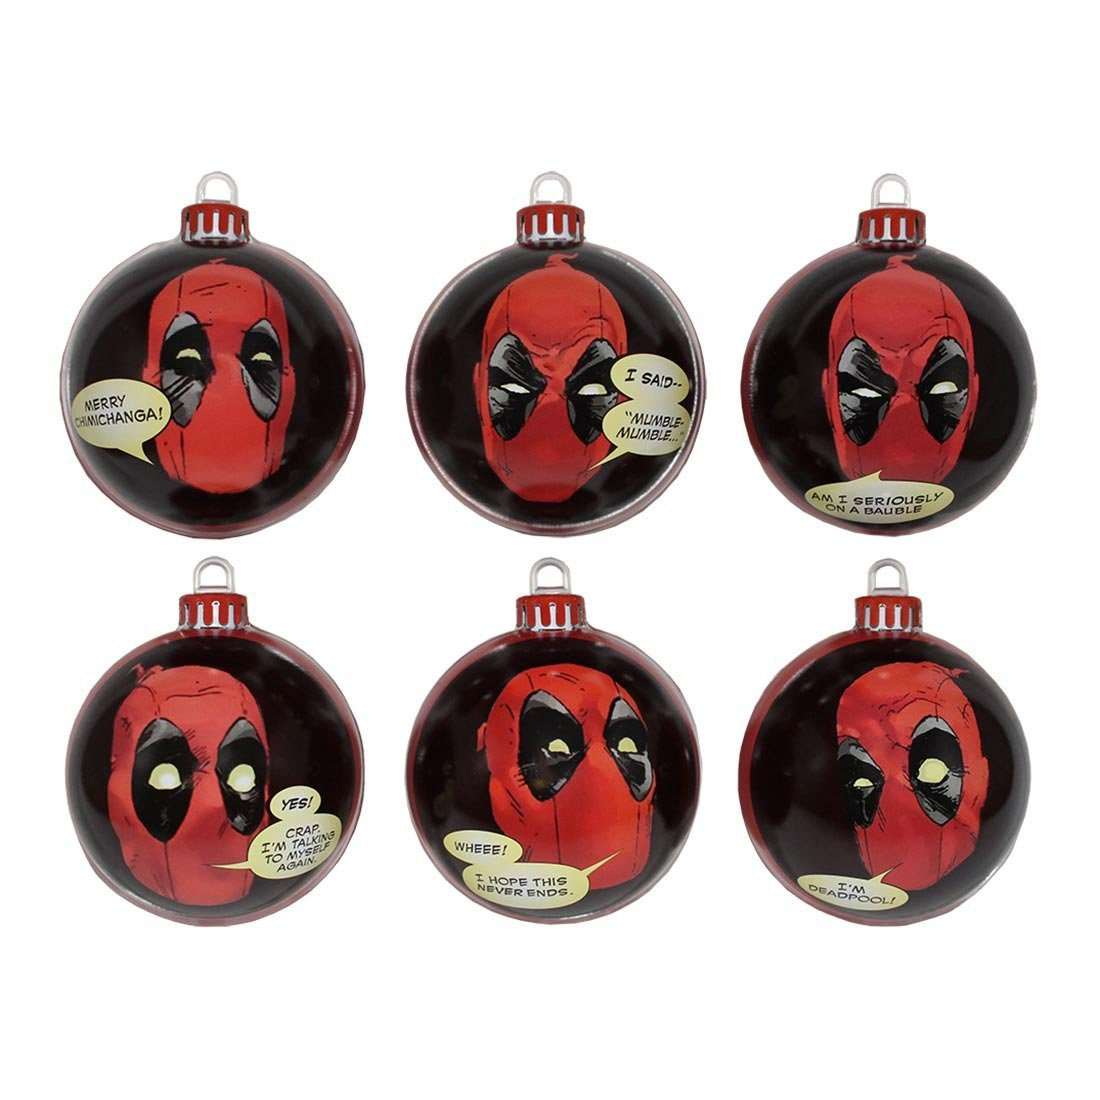 Deadpool Christmas Tree Ornaments | DudeIWantThat.com